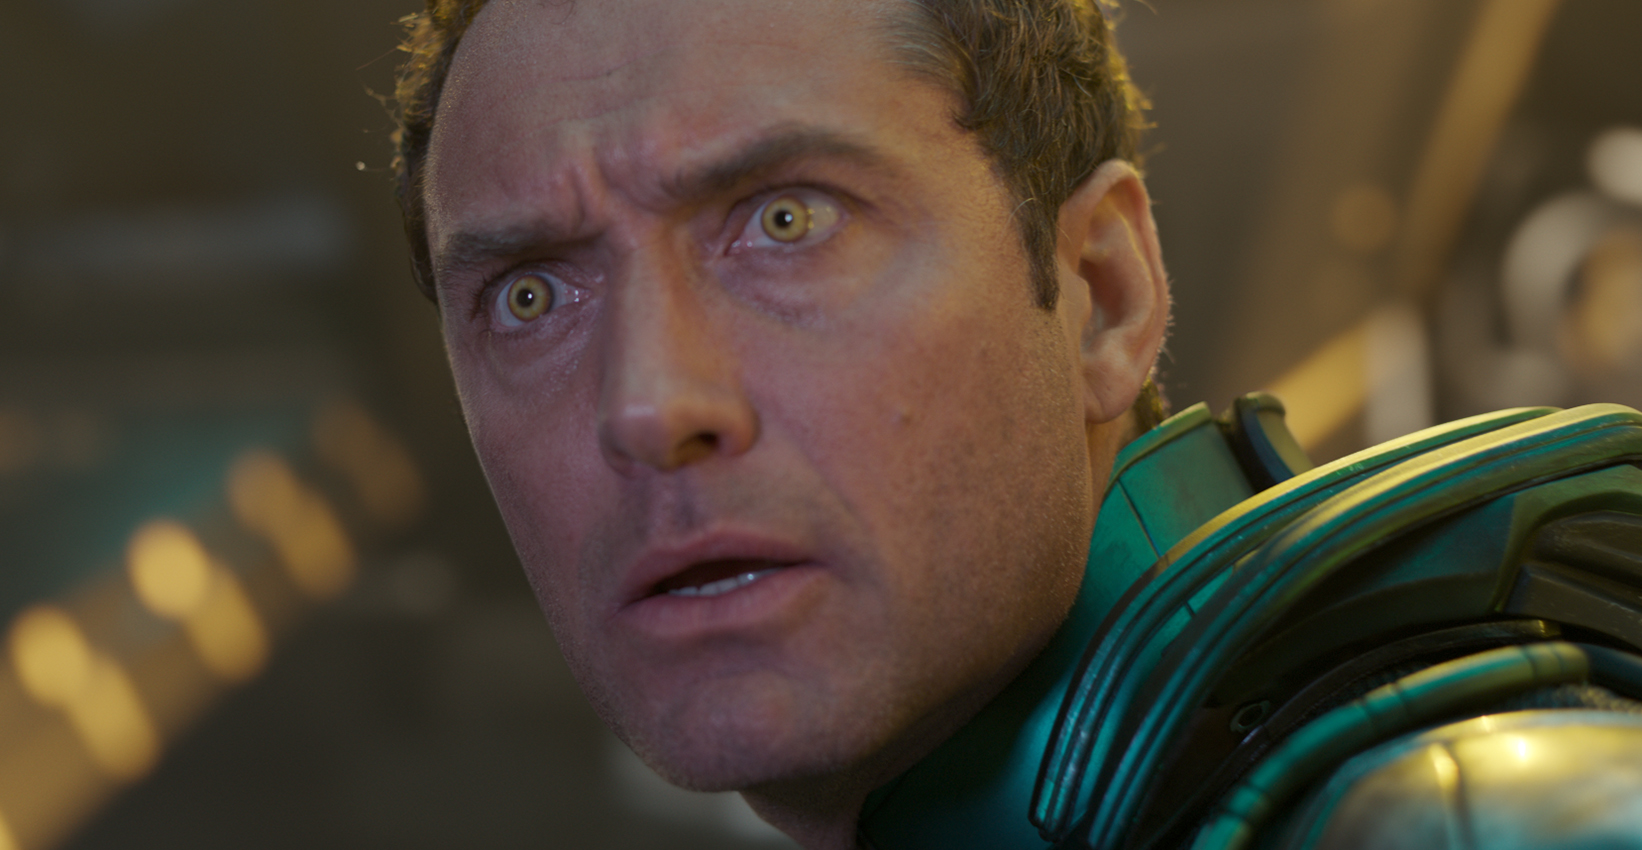 Jude Law as Yon-Rogg in Captain Marvel